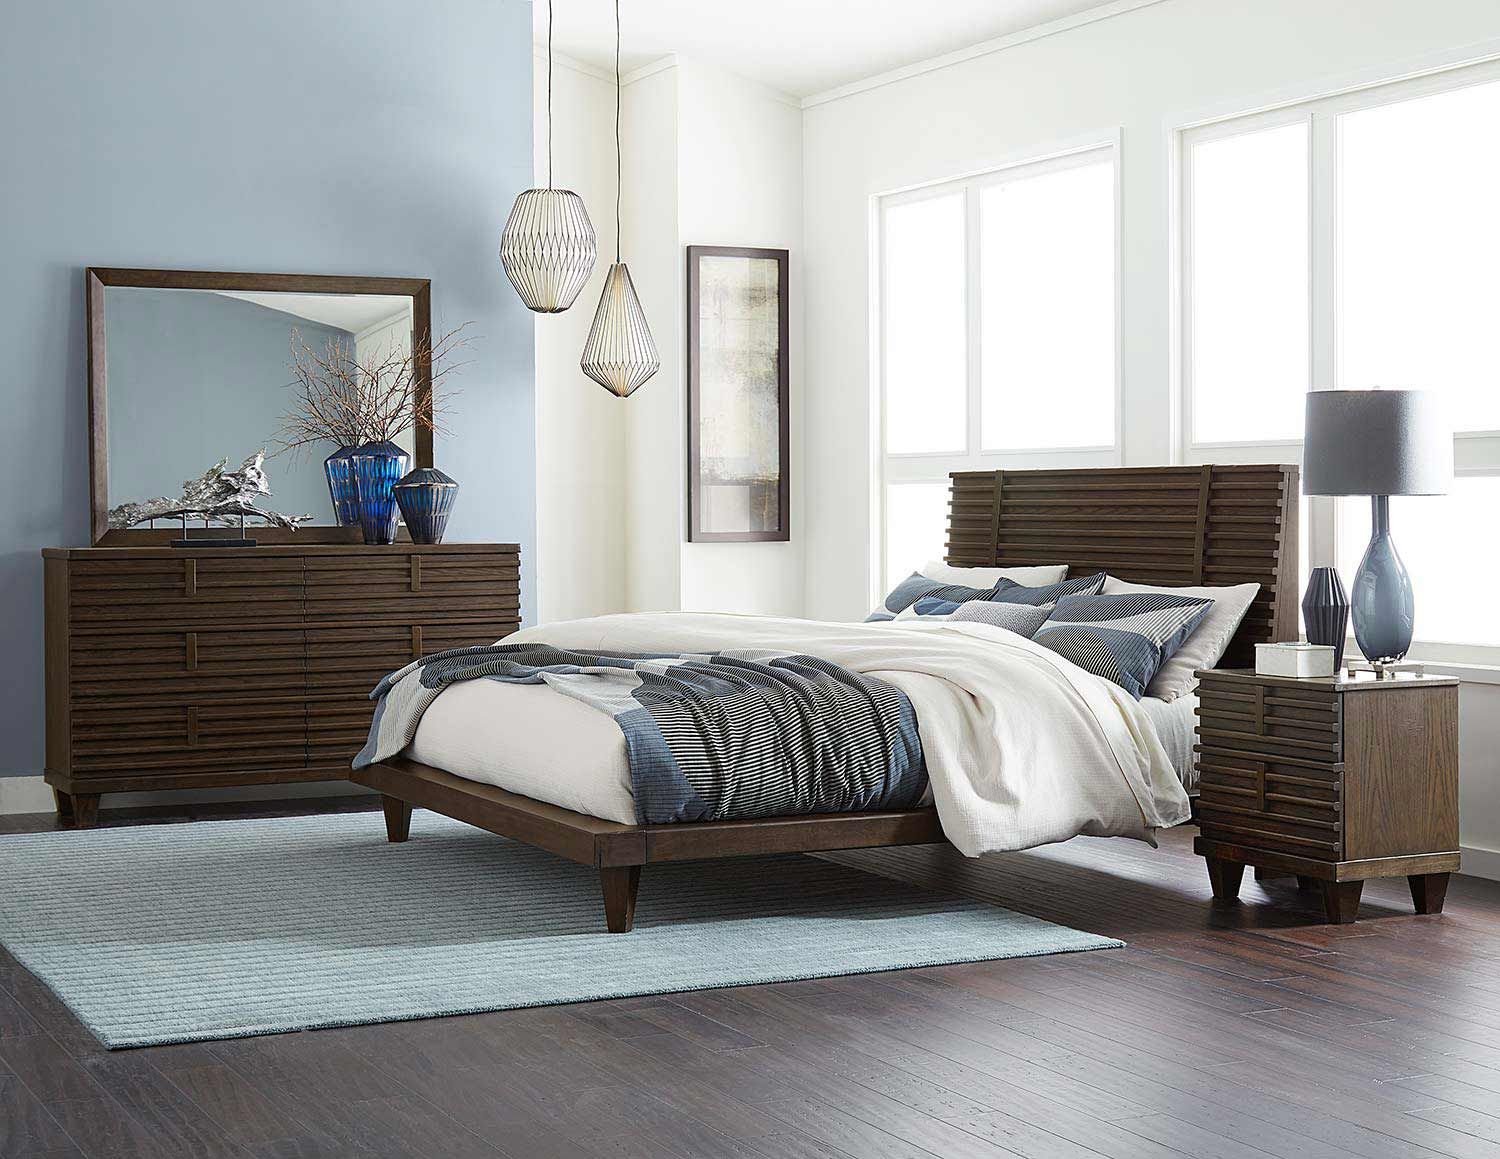 Homelegance Ridgewood Platform Bedroom Set - Rustic Burnished Oak